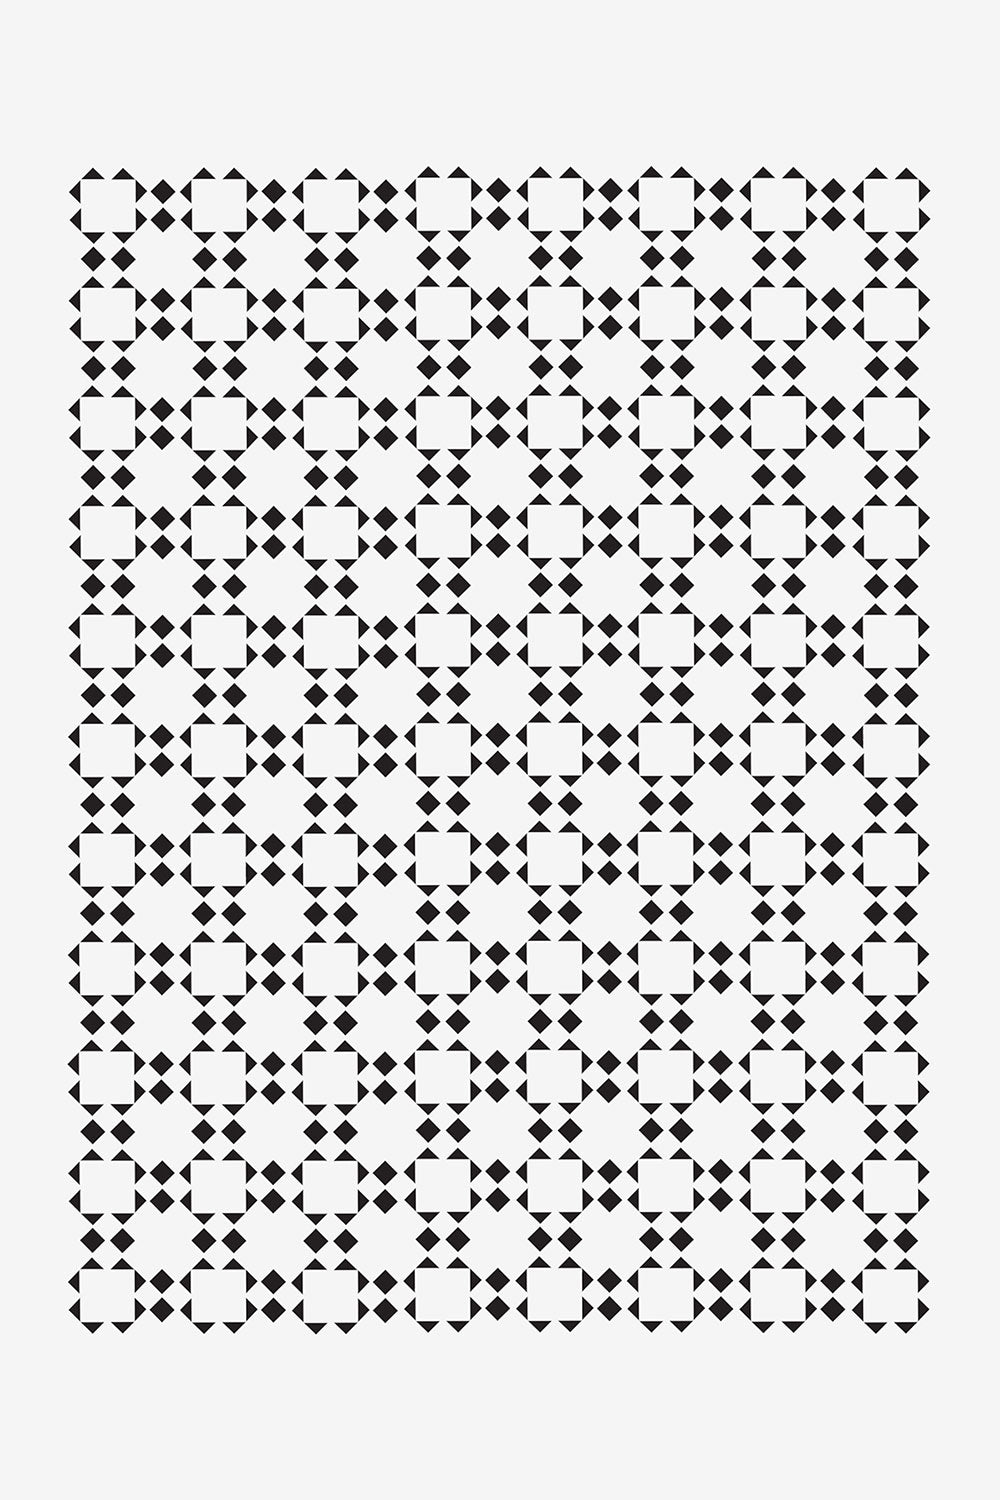 The School of Making Artwork: Check Stencil Tweed Inspired Stencil Design for Hand-Painted Clothing Projects in Black and White